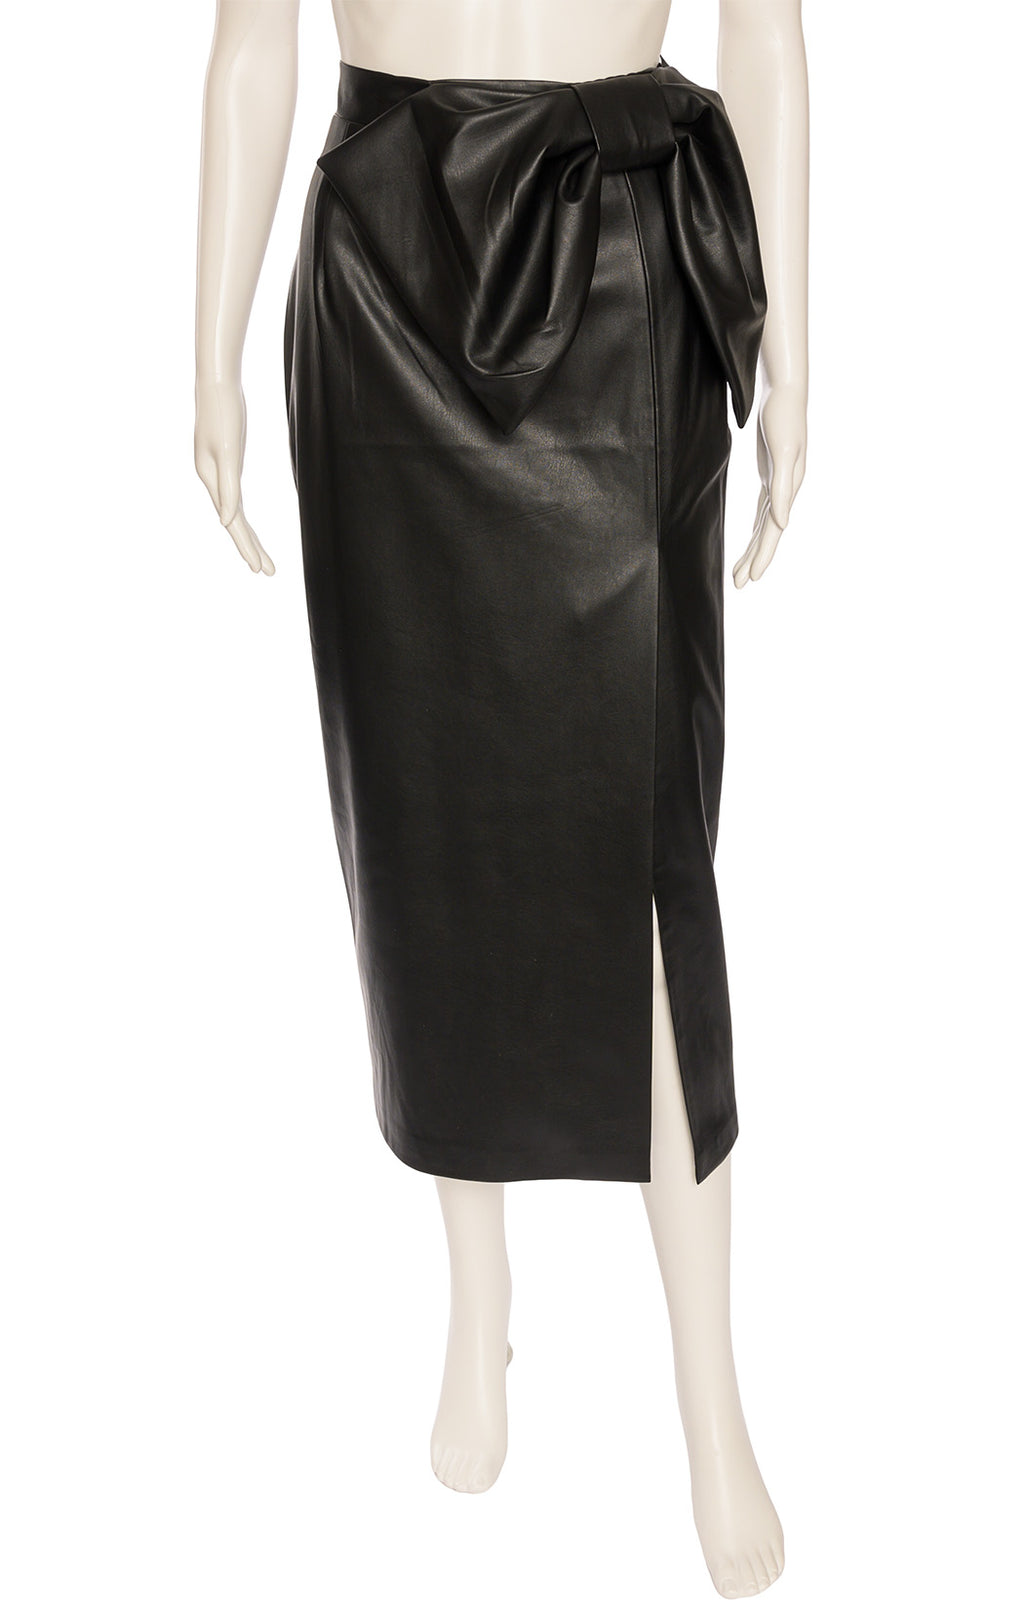 Black faux leather high waisted midi length skirt with side zipper, high slit and front bow